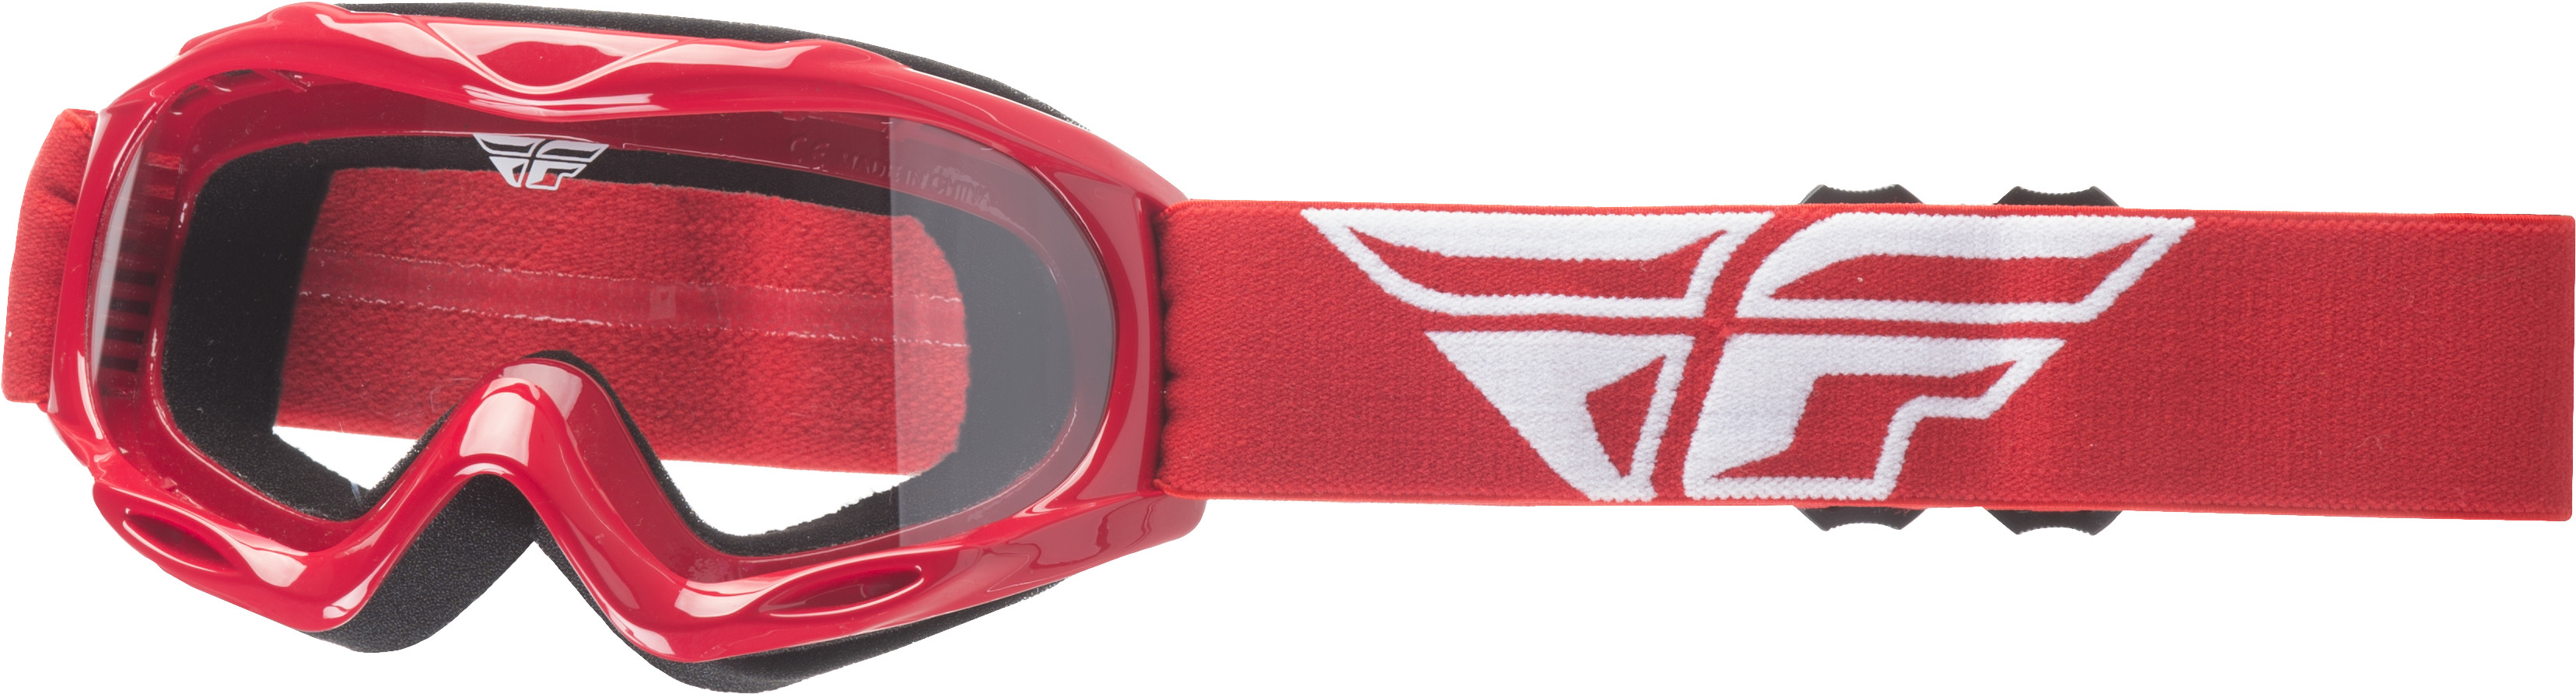 Focus Youth Goggle Red W/ Clear Lens